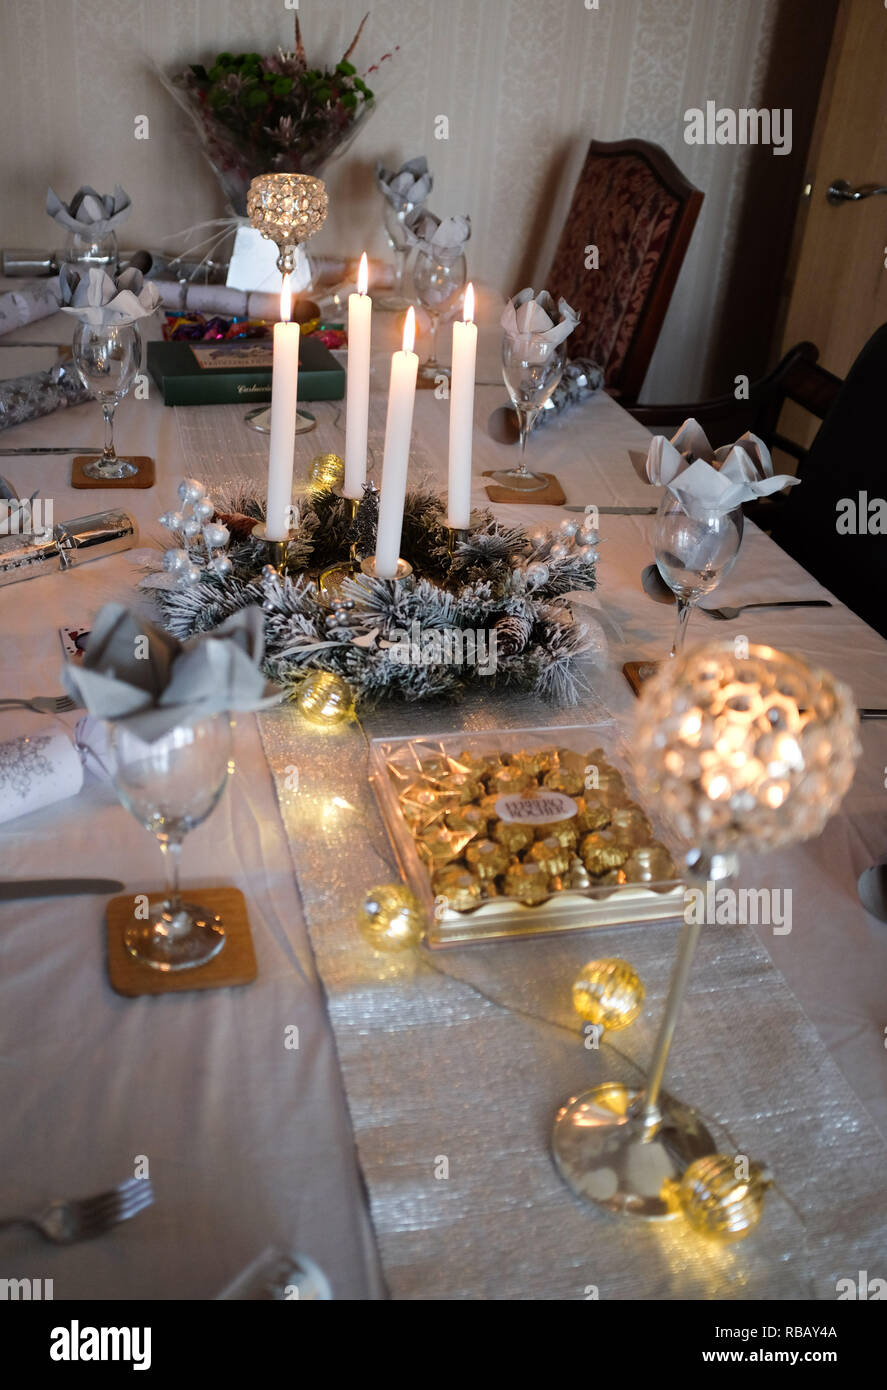 Table set for festive meal at Christmas - Stock Image